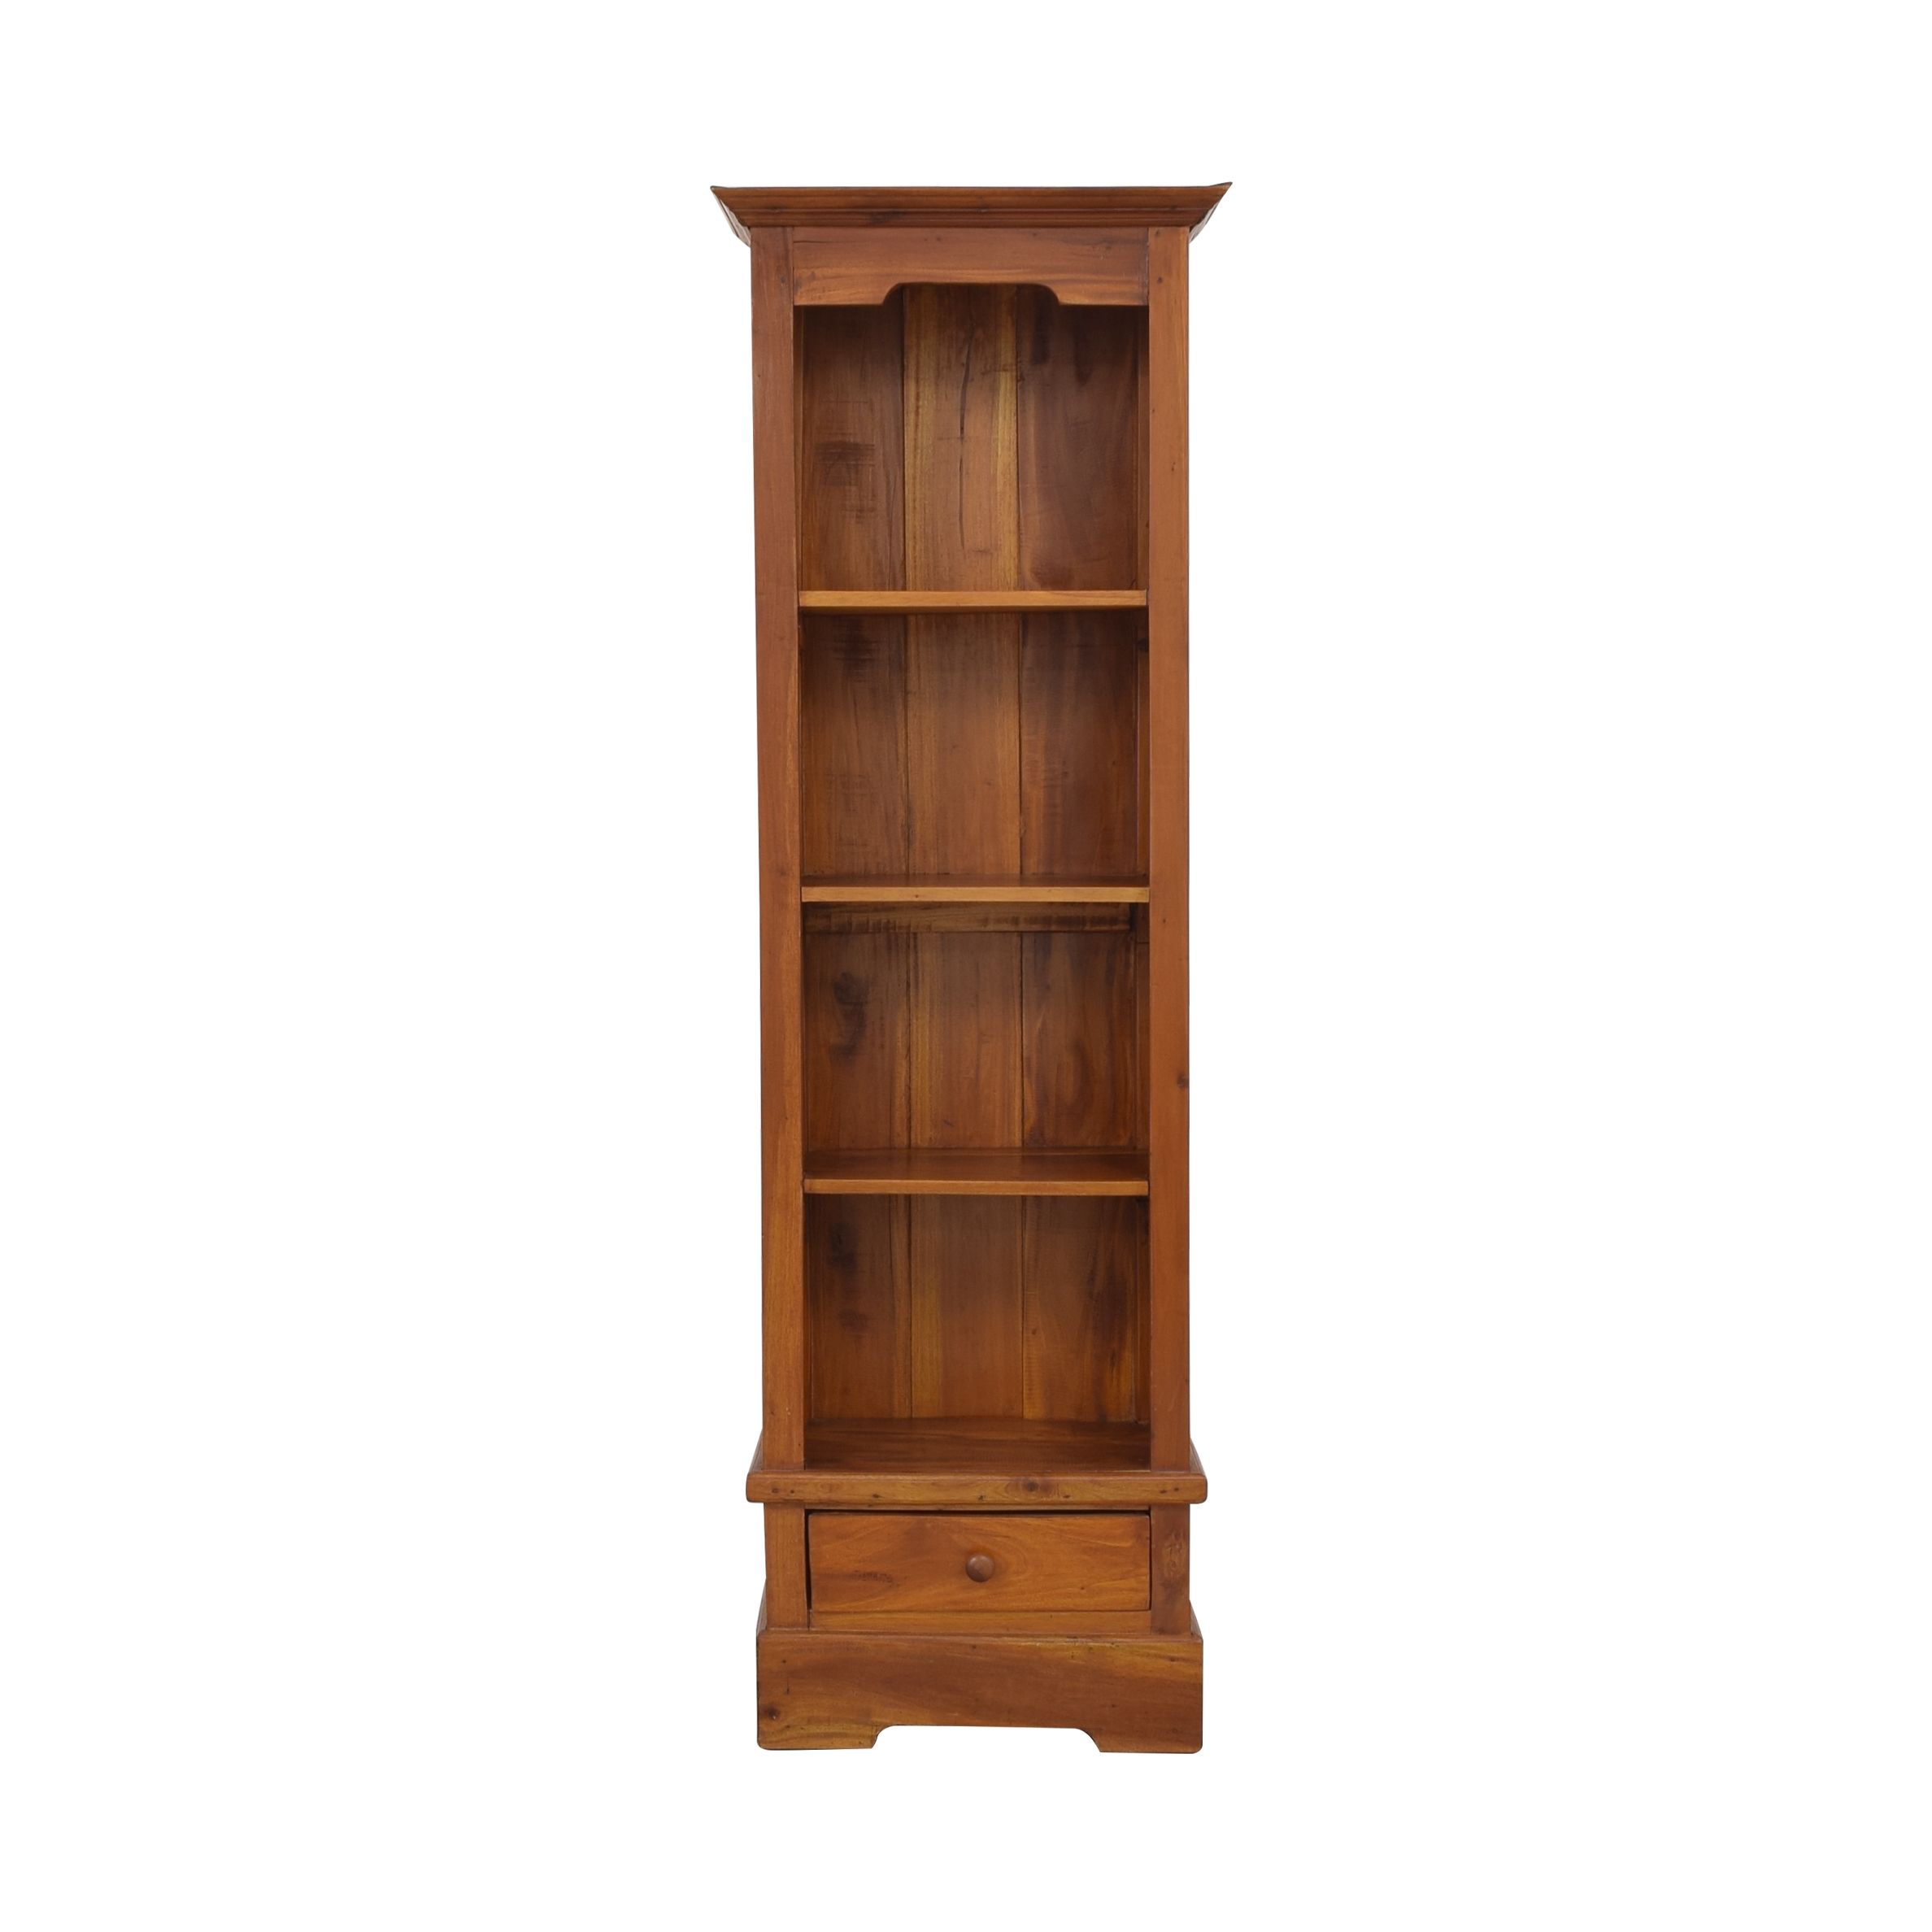 Tall Wood Bookcase with Storage Drawer ma